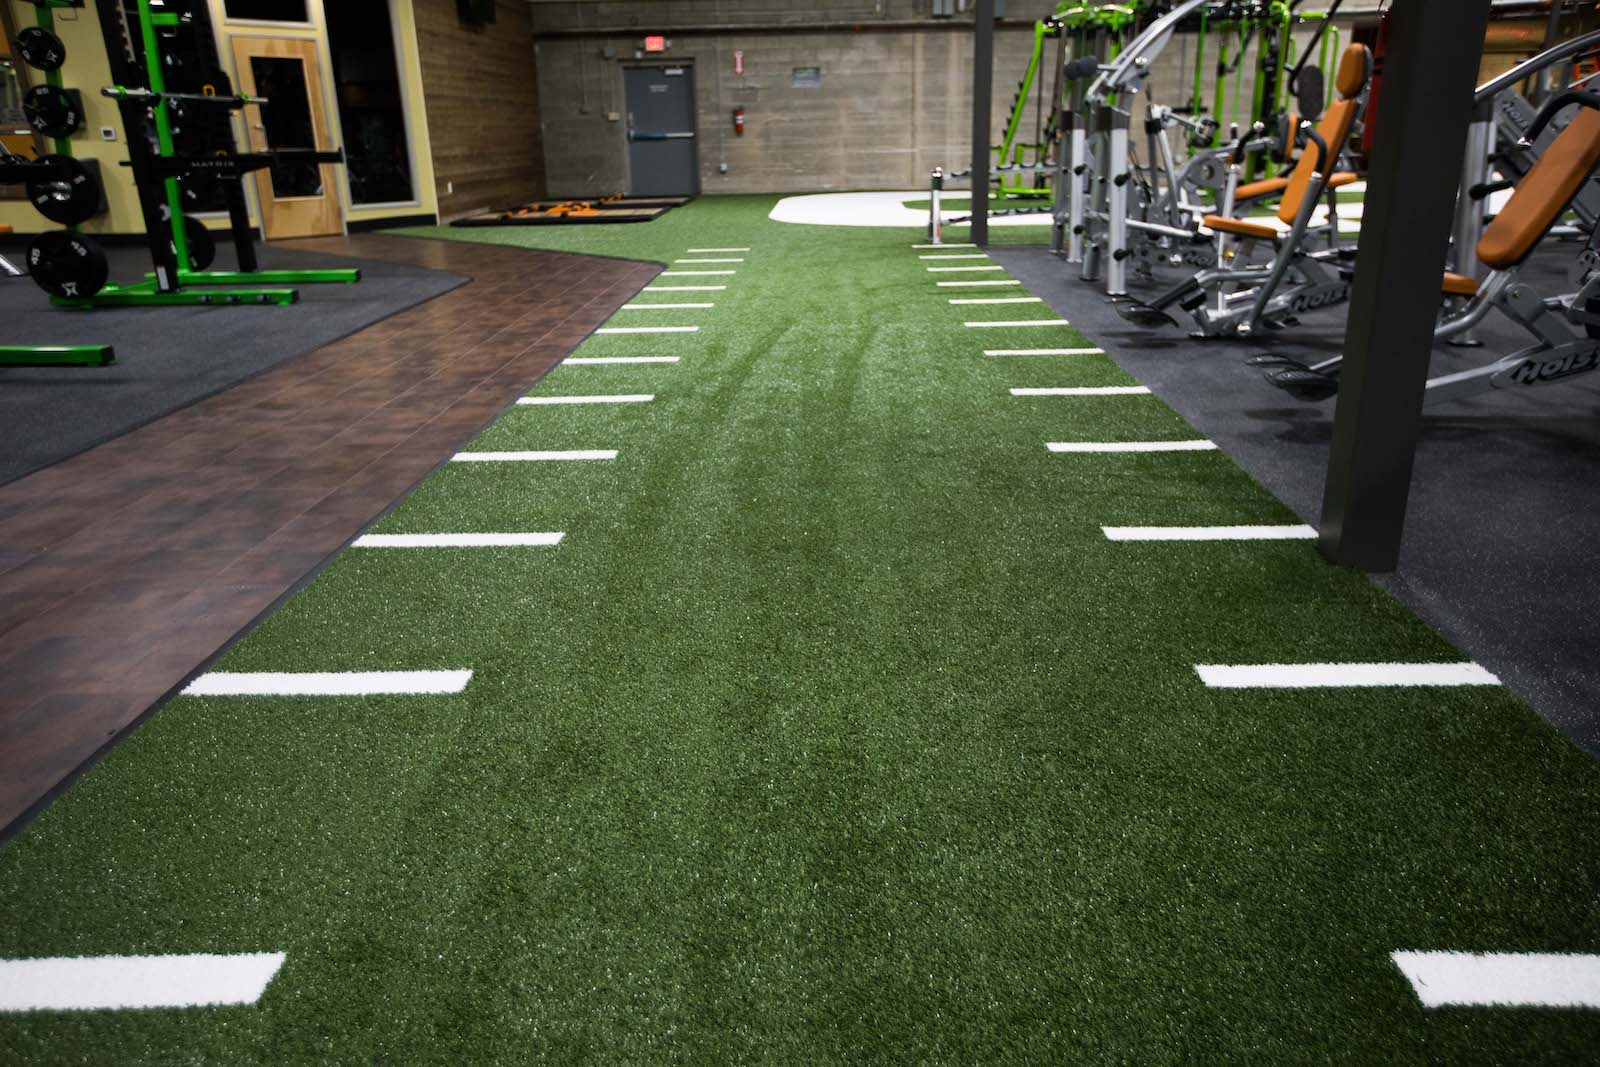 Functional Training Space on our Indoor Turf